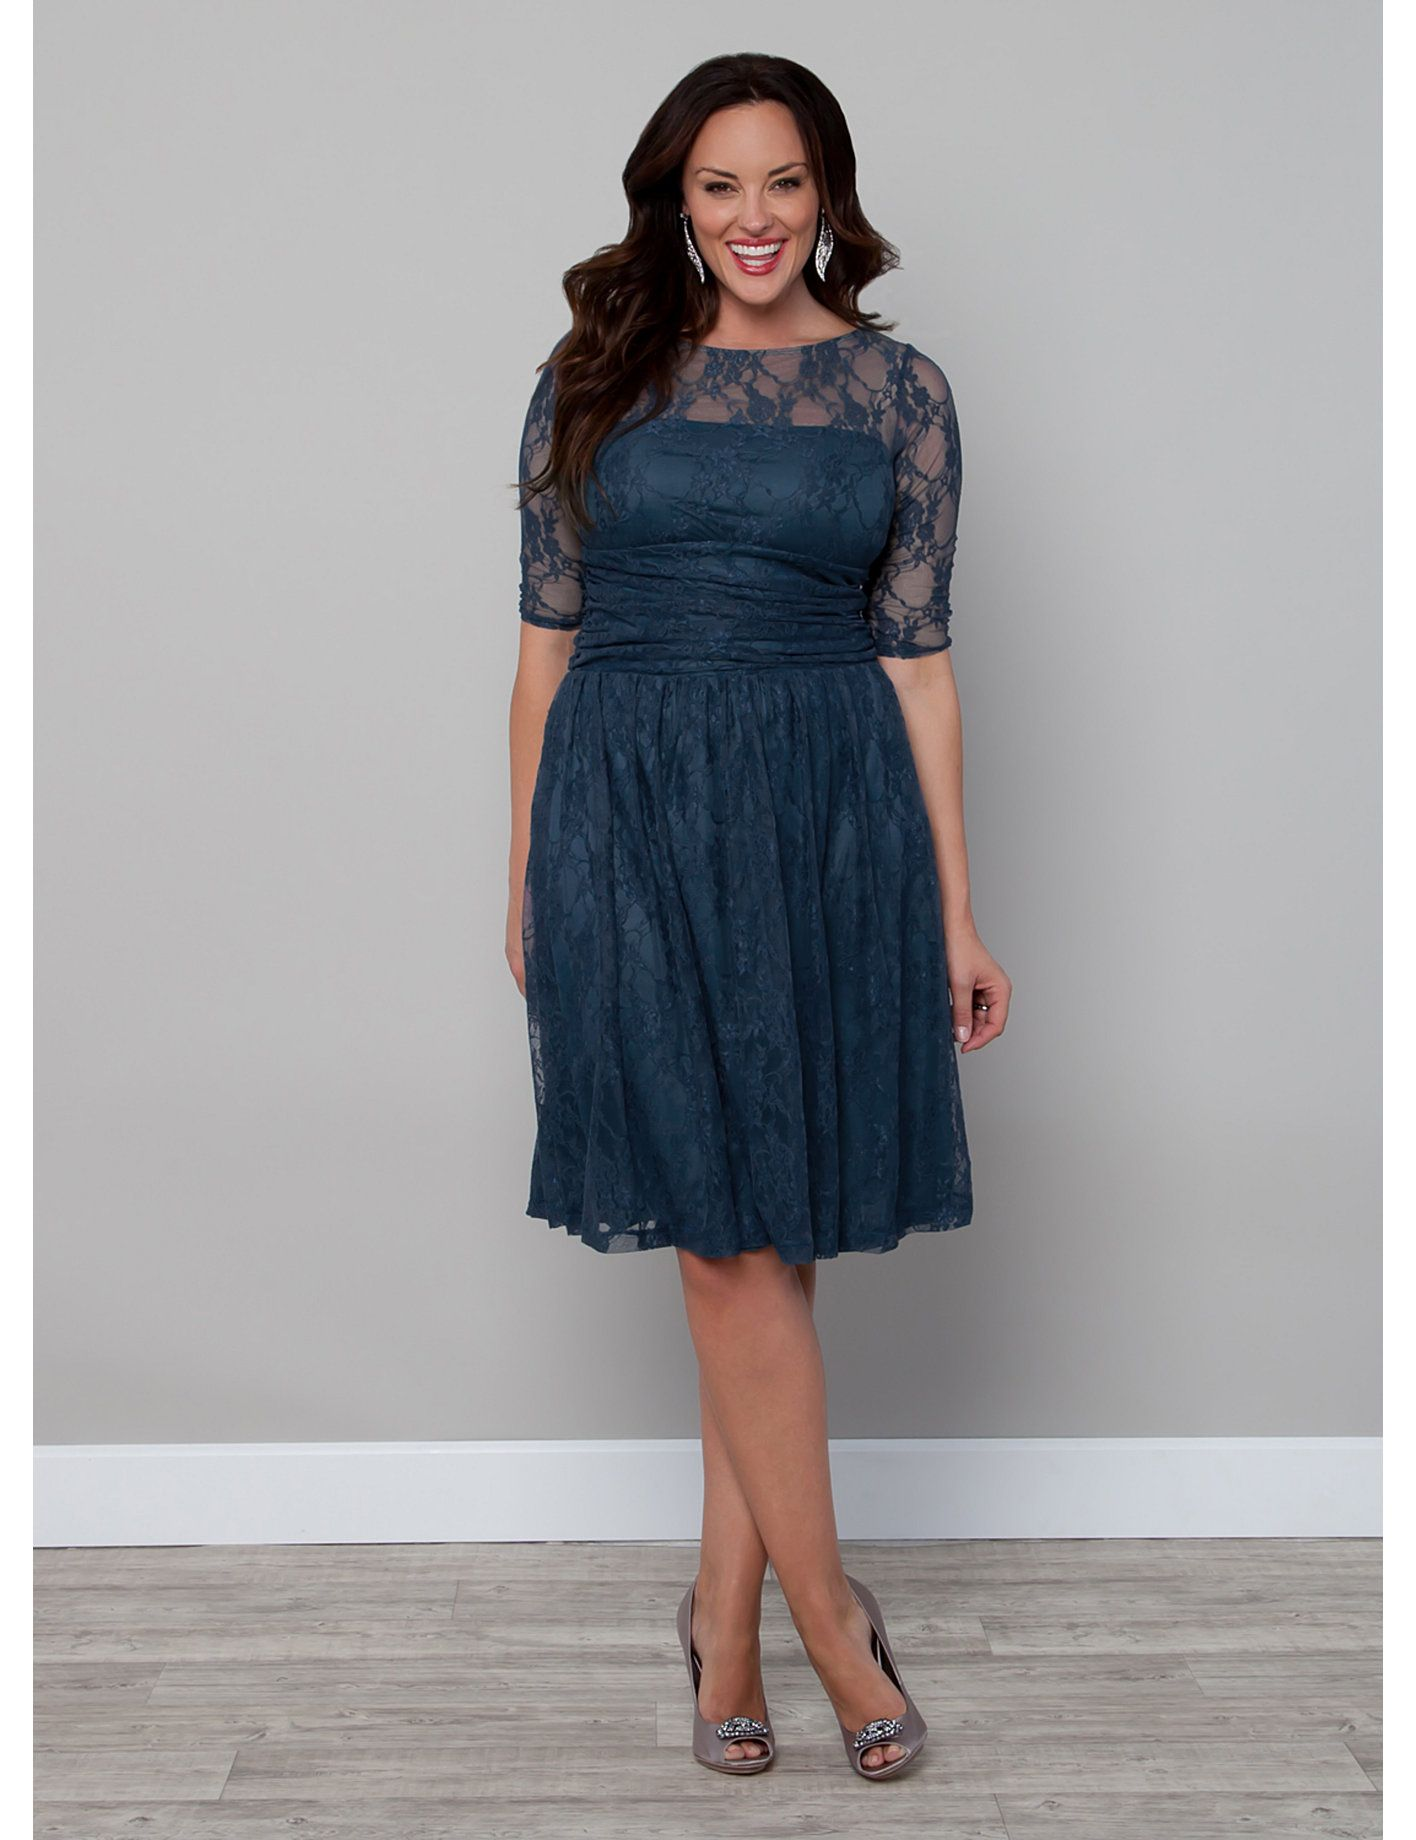 Teal lace dress from Lane Bryant....I have a slight obsession with ...